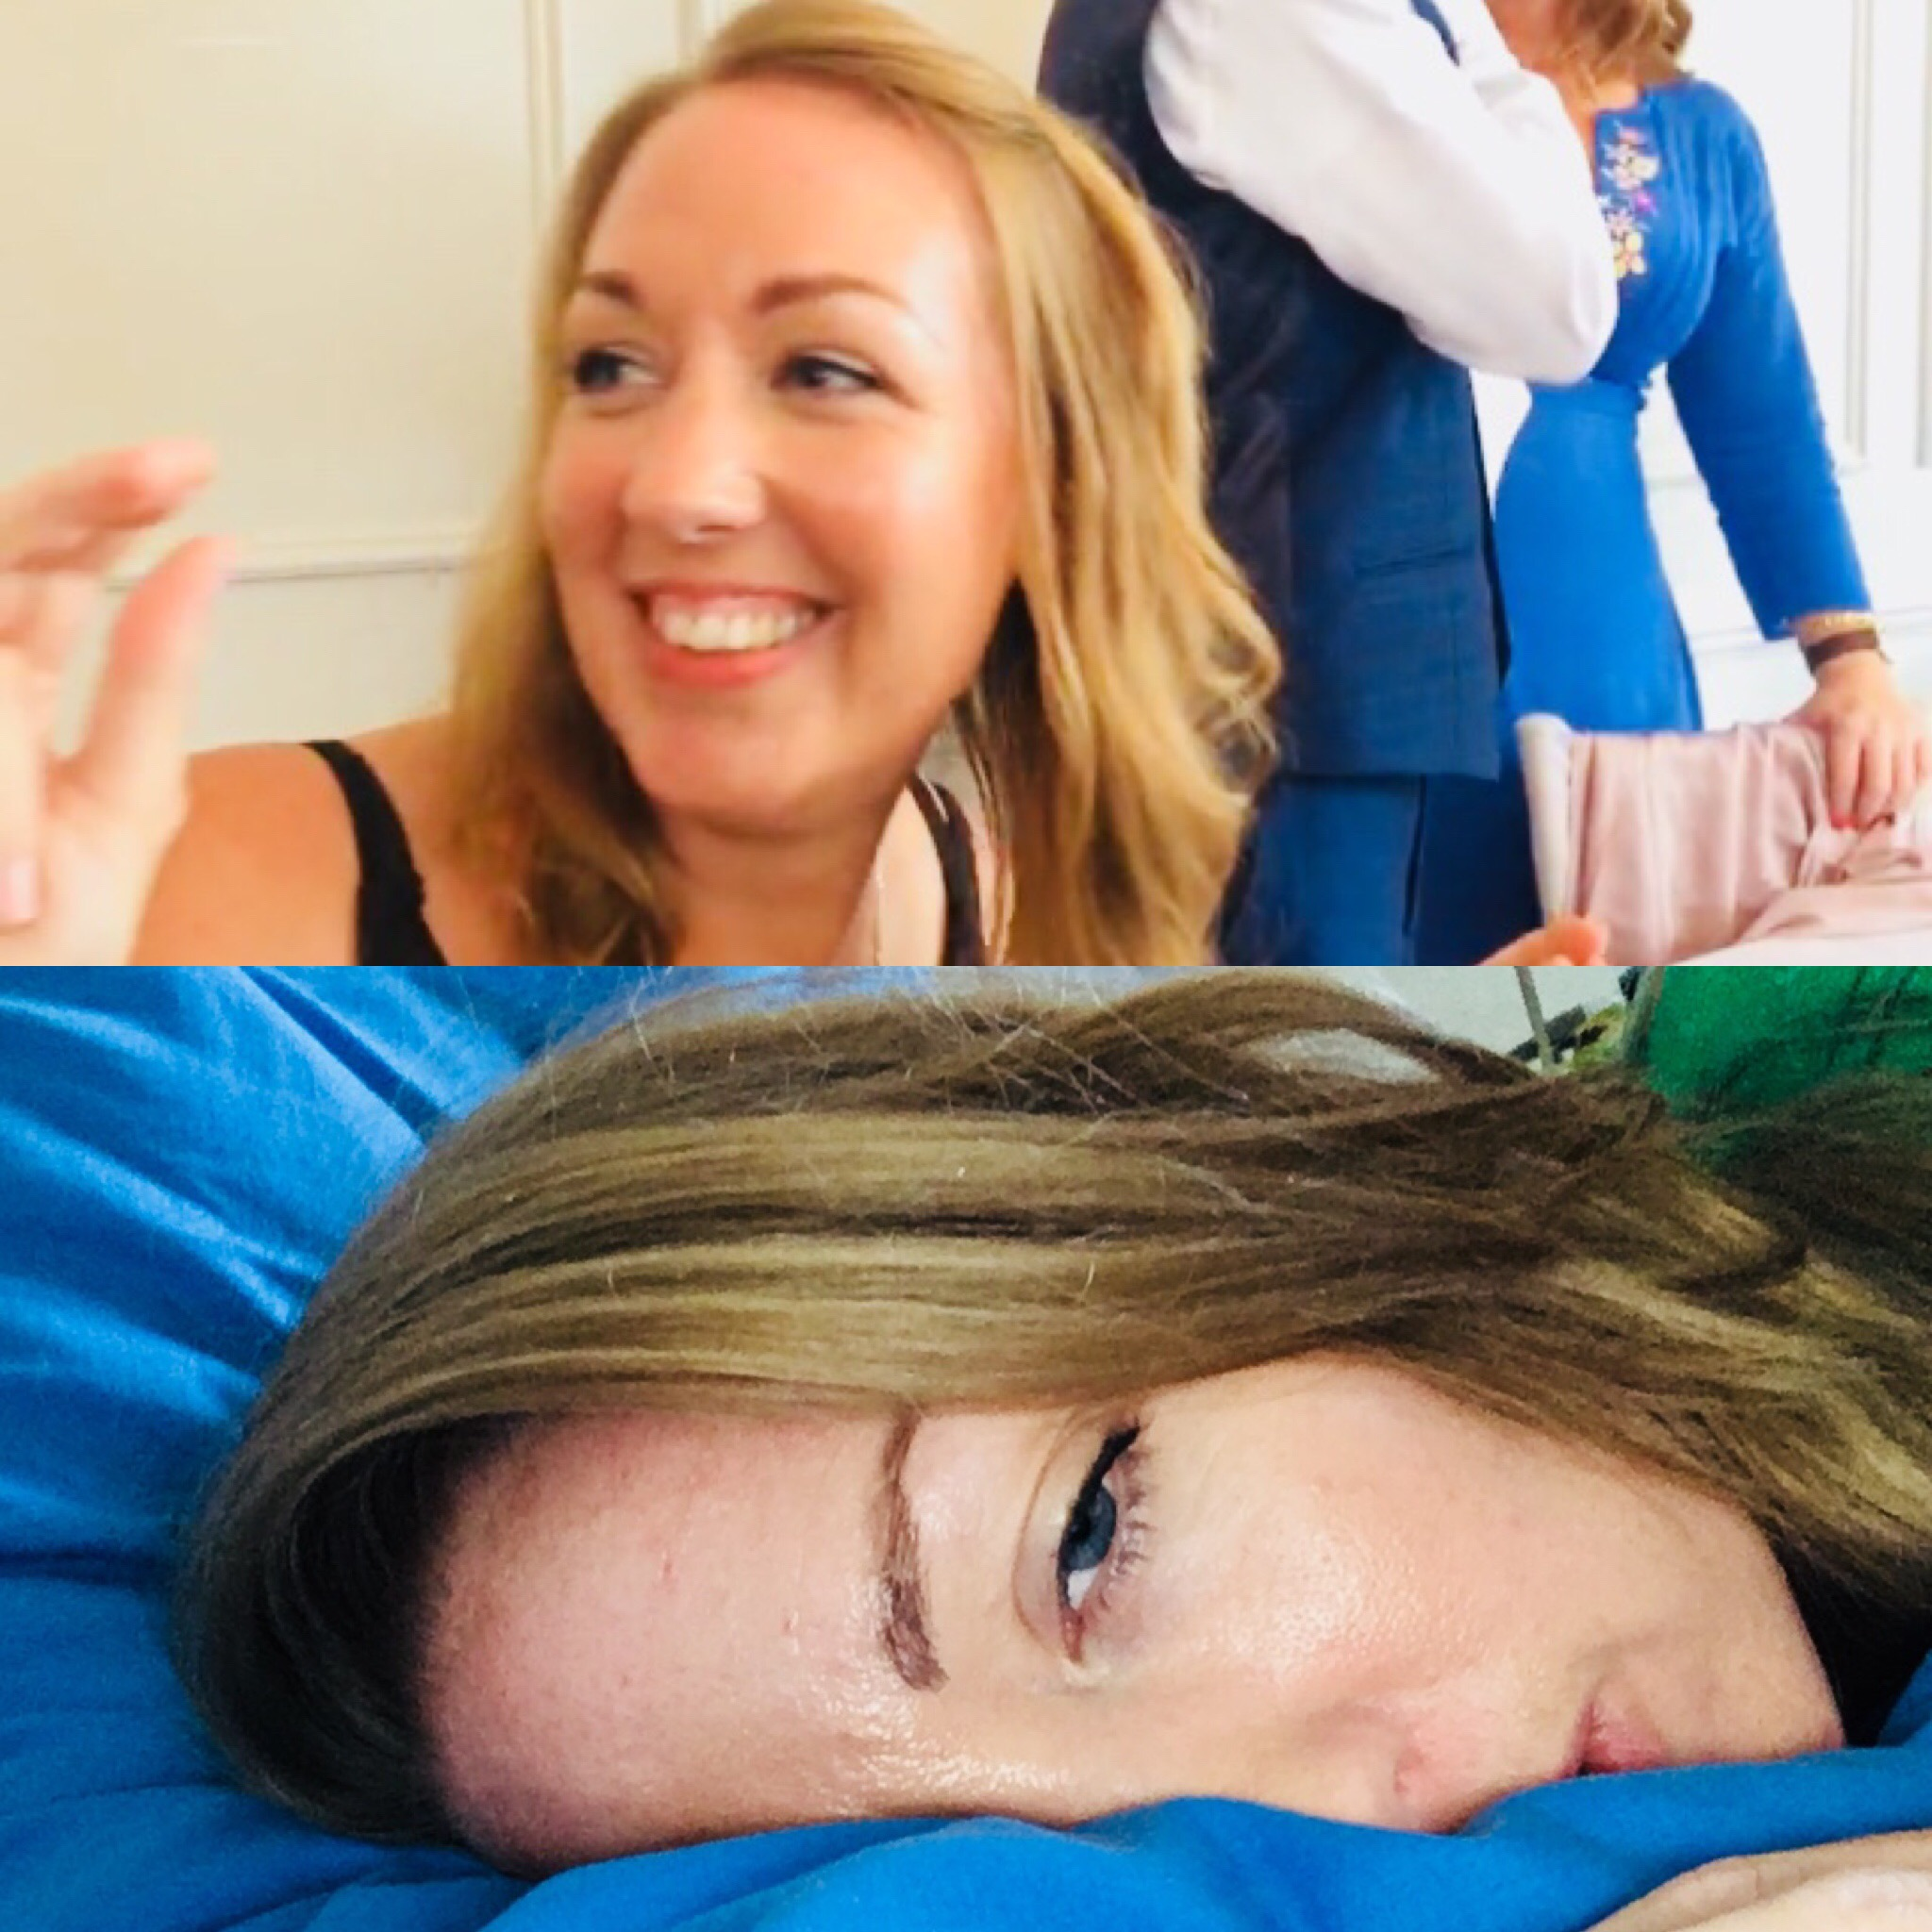 A collage of two images, one a photo of the writer at the wedding. The other of her exhausted in bed.